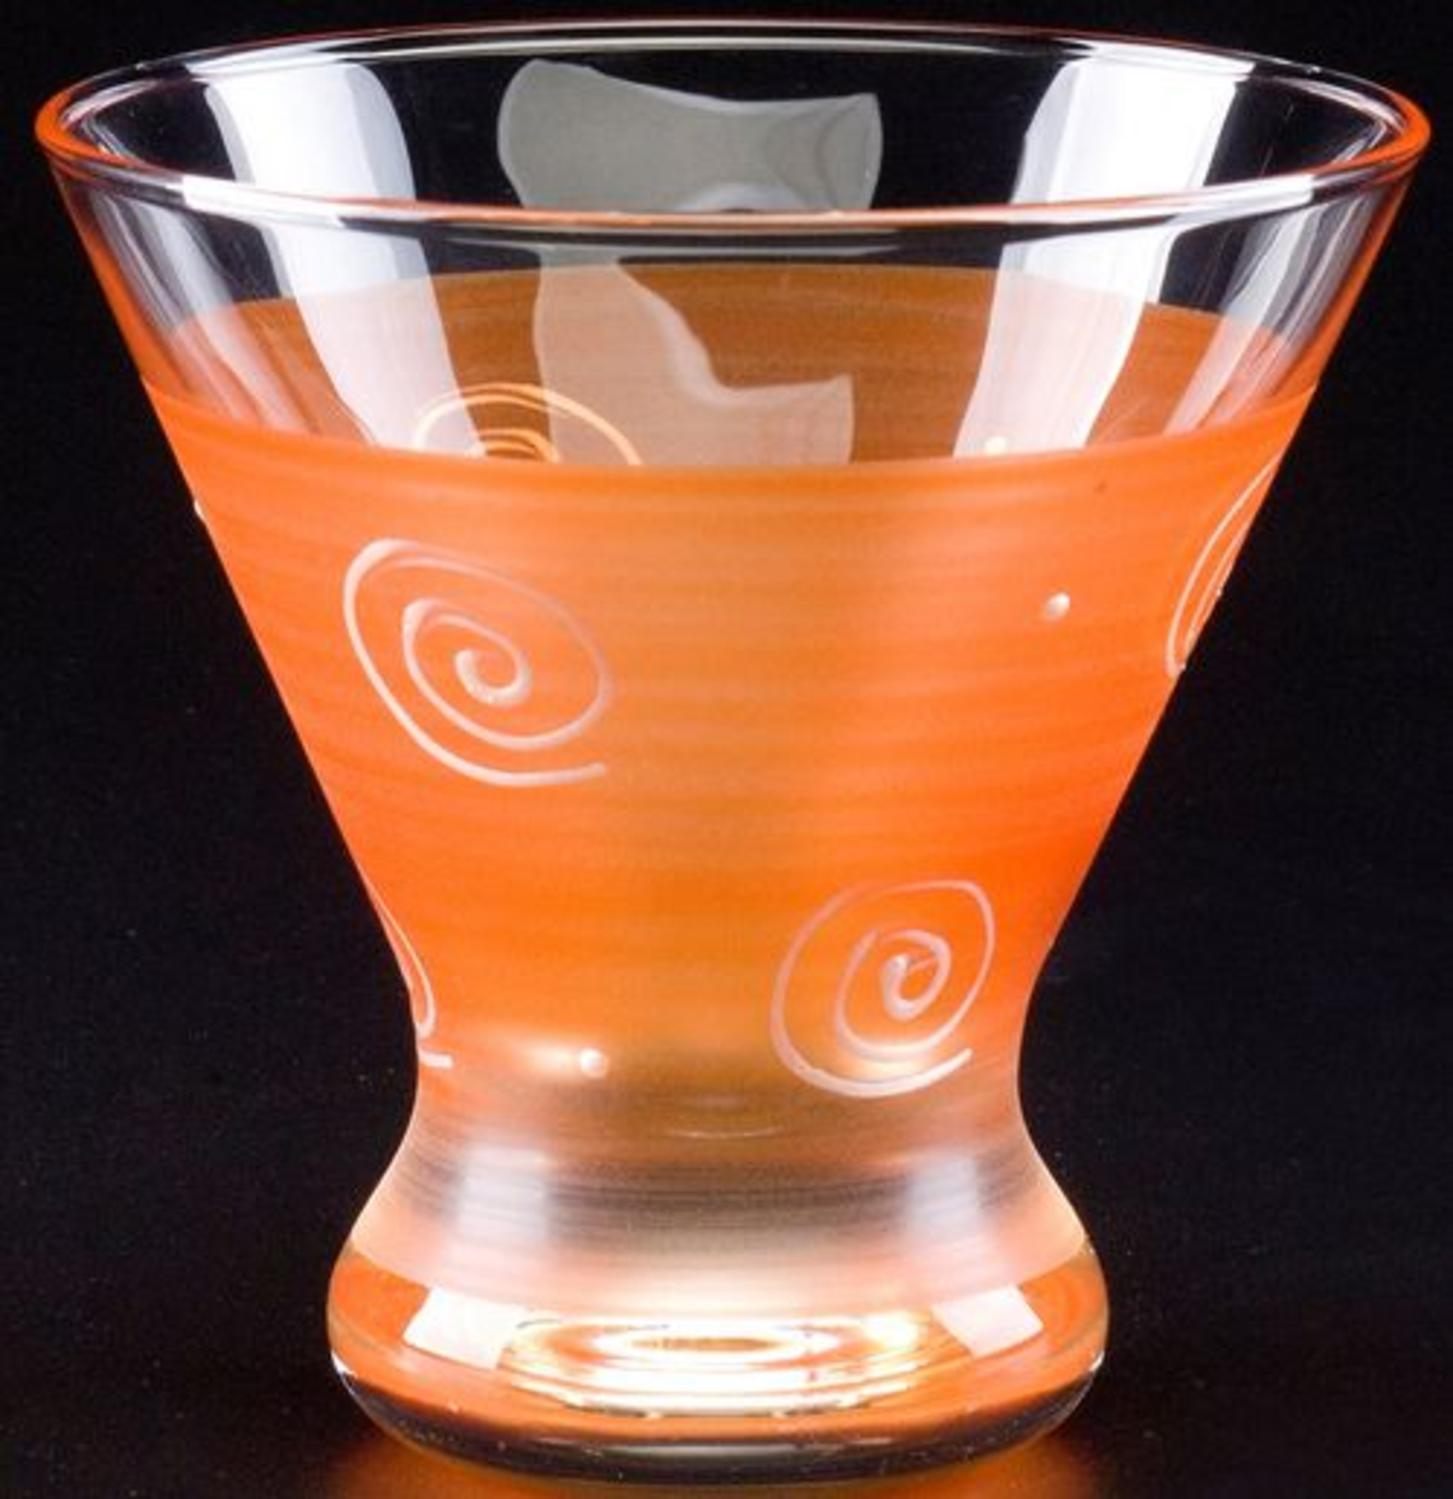 Set of 2 Orange & White Hand Painted Cosmopolitan Wine Glass - 8.25 Ounces